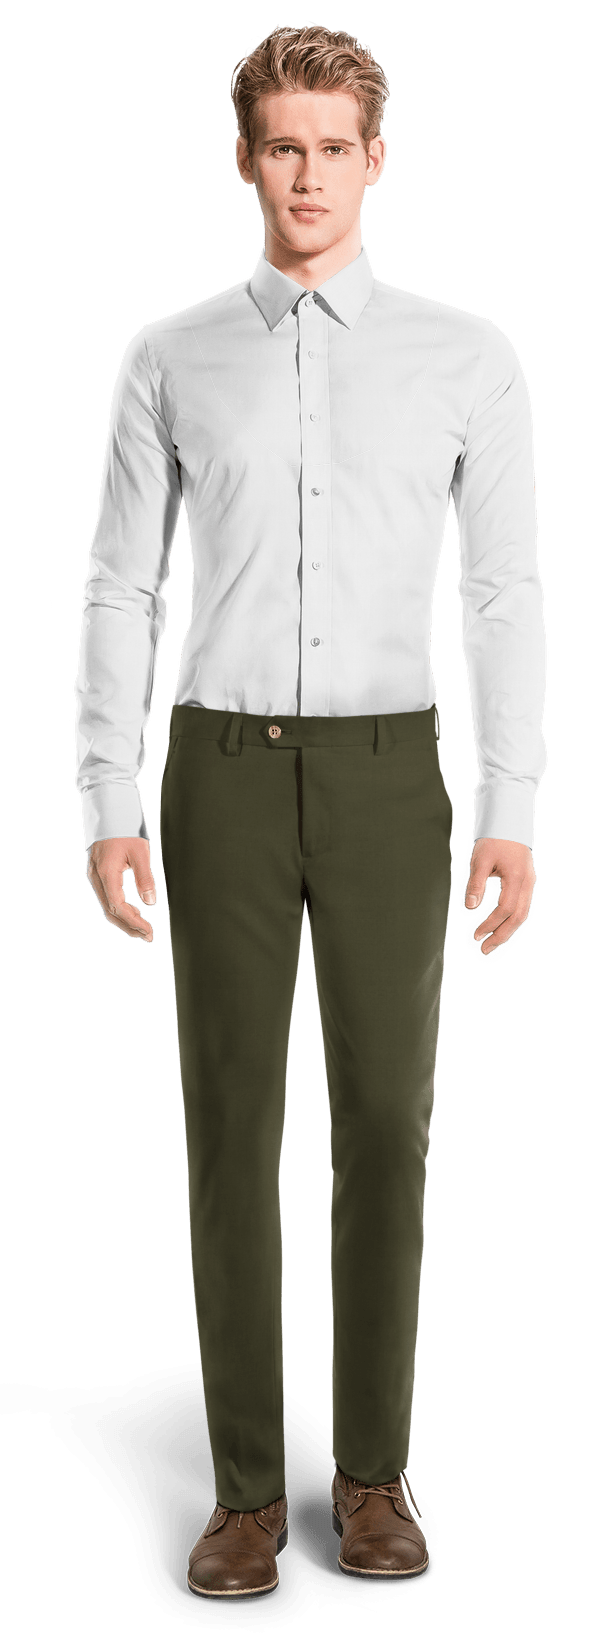 Pantaloni chino slim fit verdi